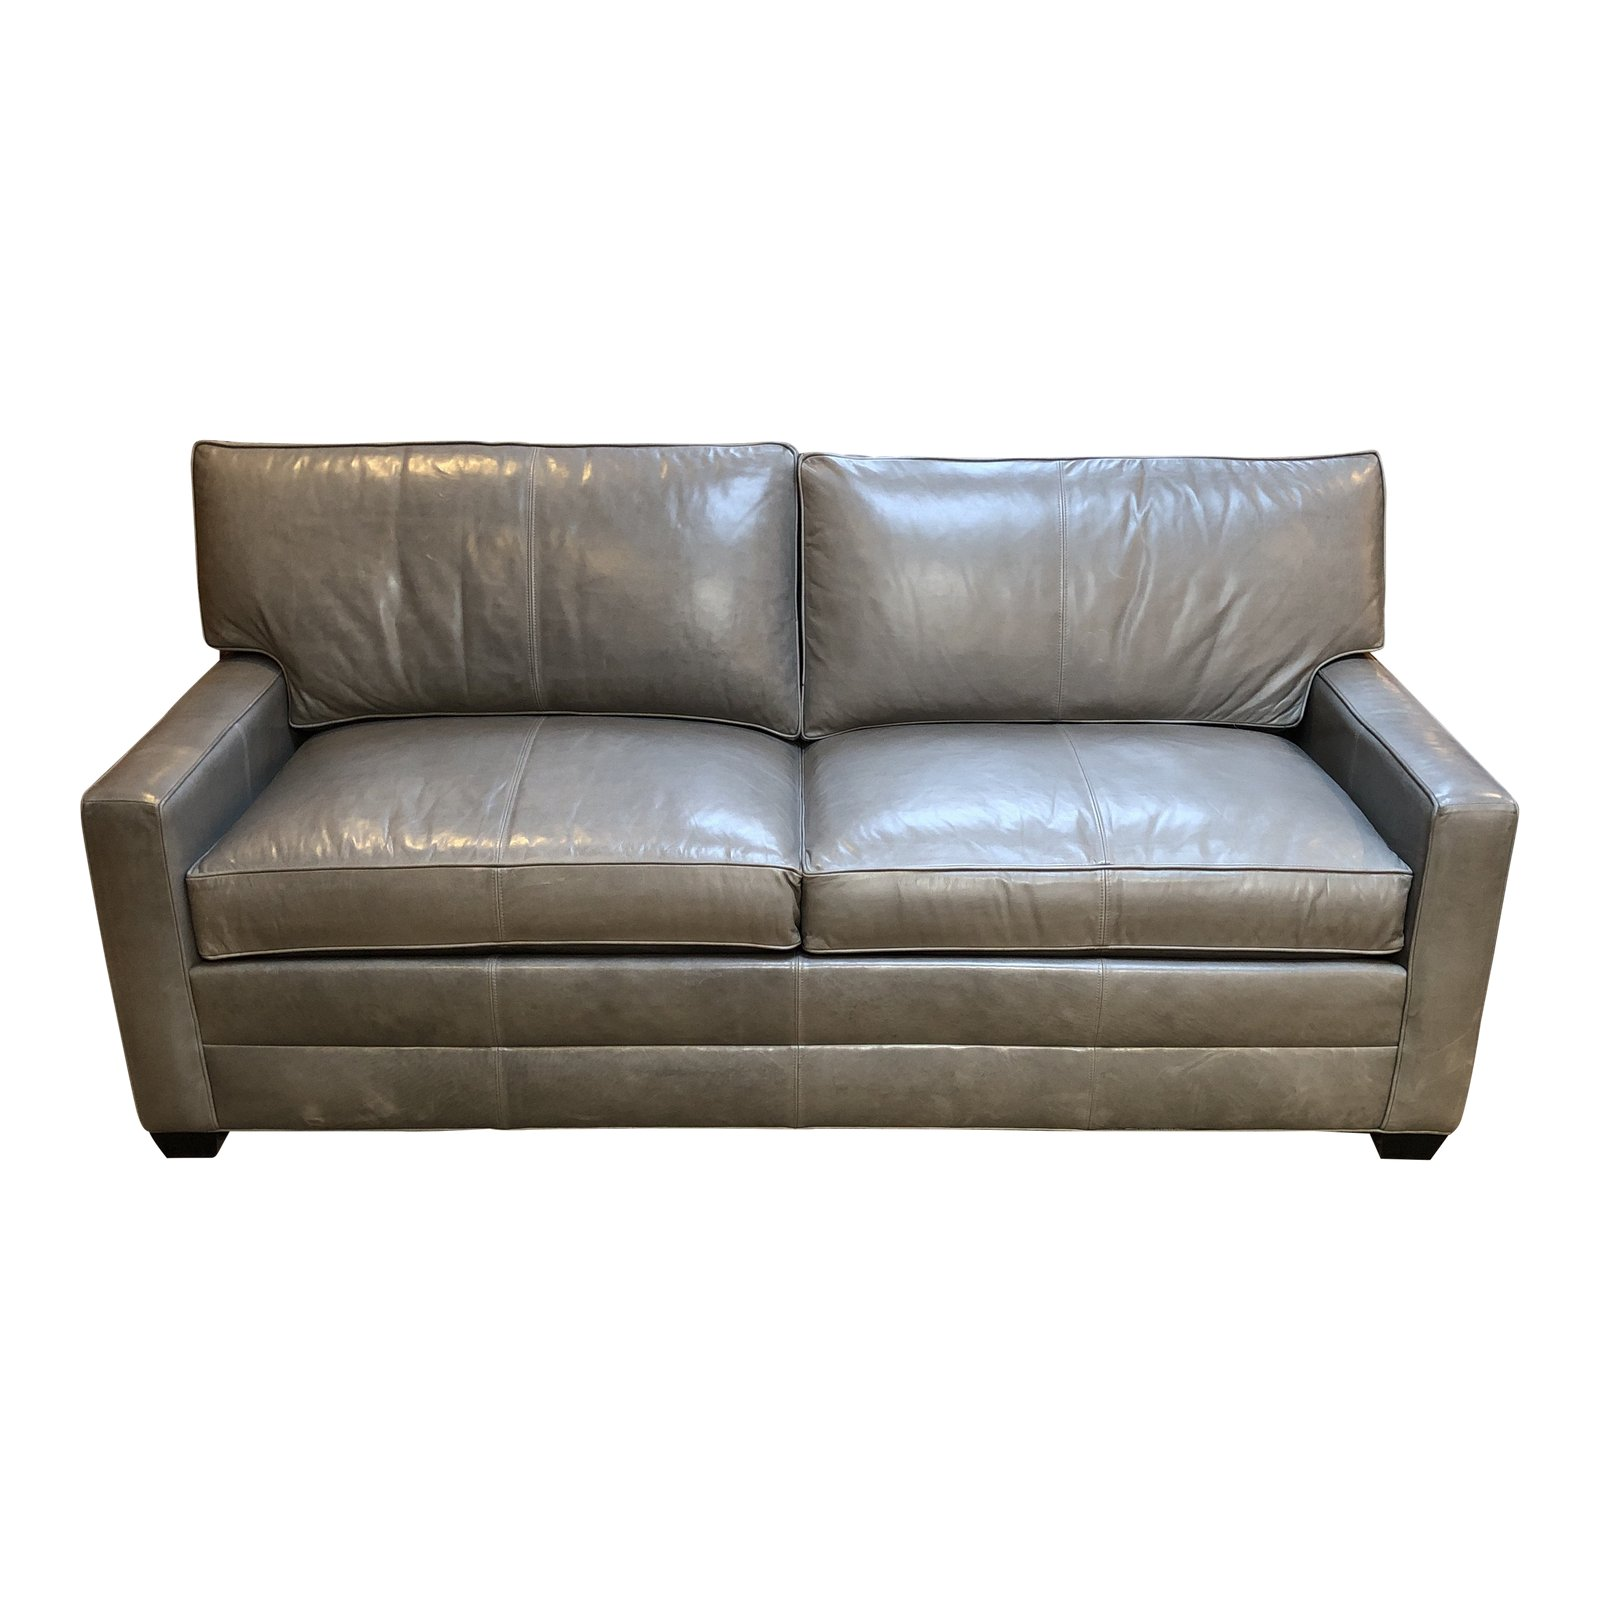 New Bennett Leather Sofa From Ethan Allen Original Price 3 800